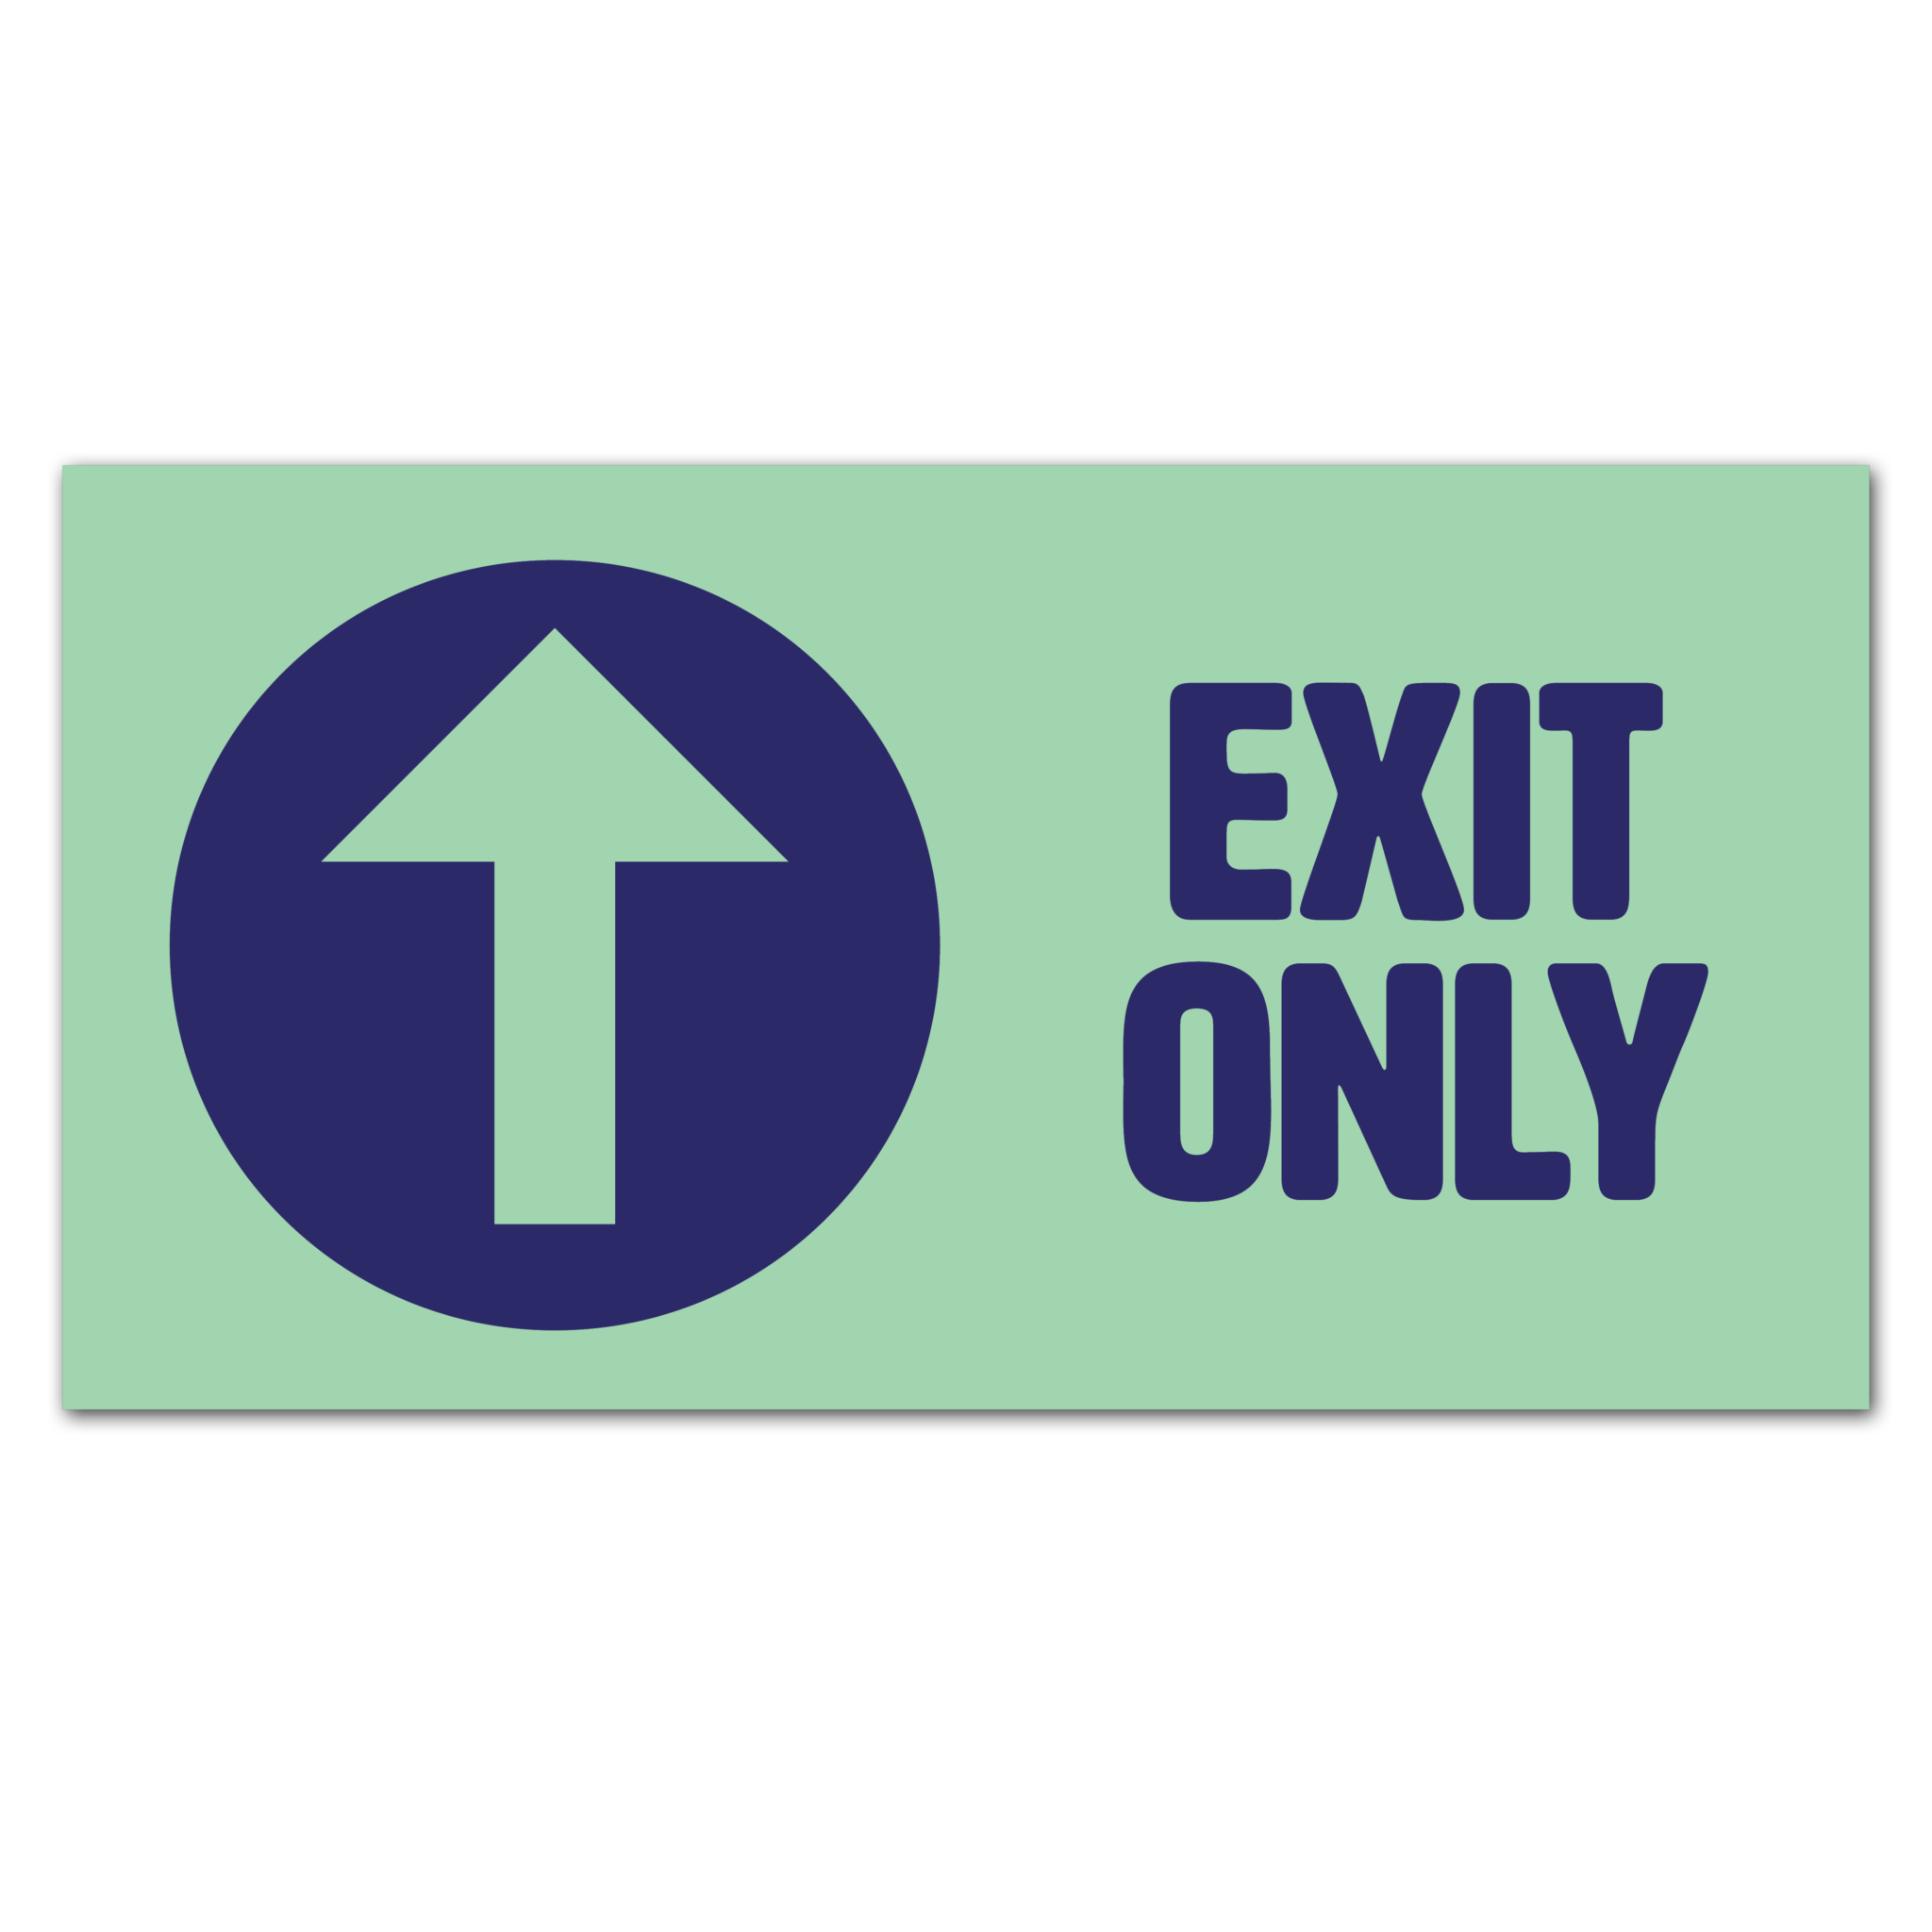 Covid 19 Exit Only Floor Sticker